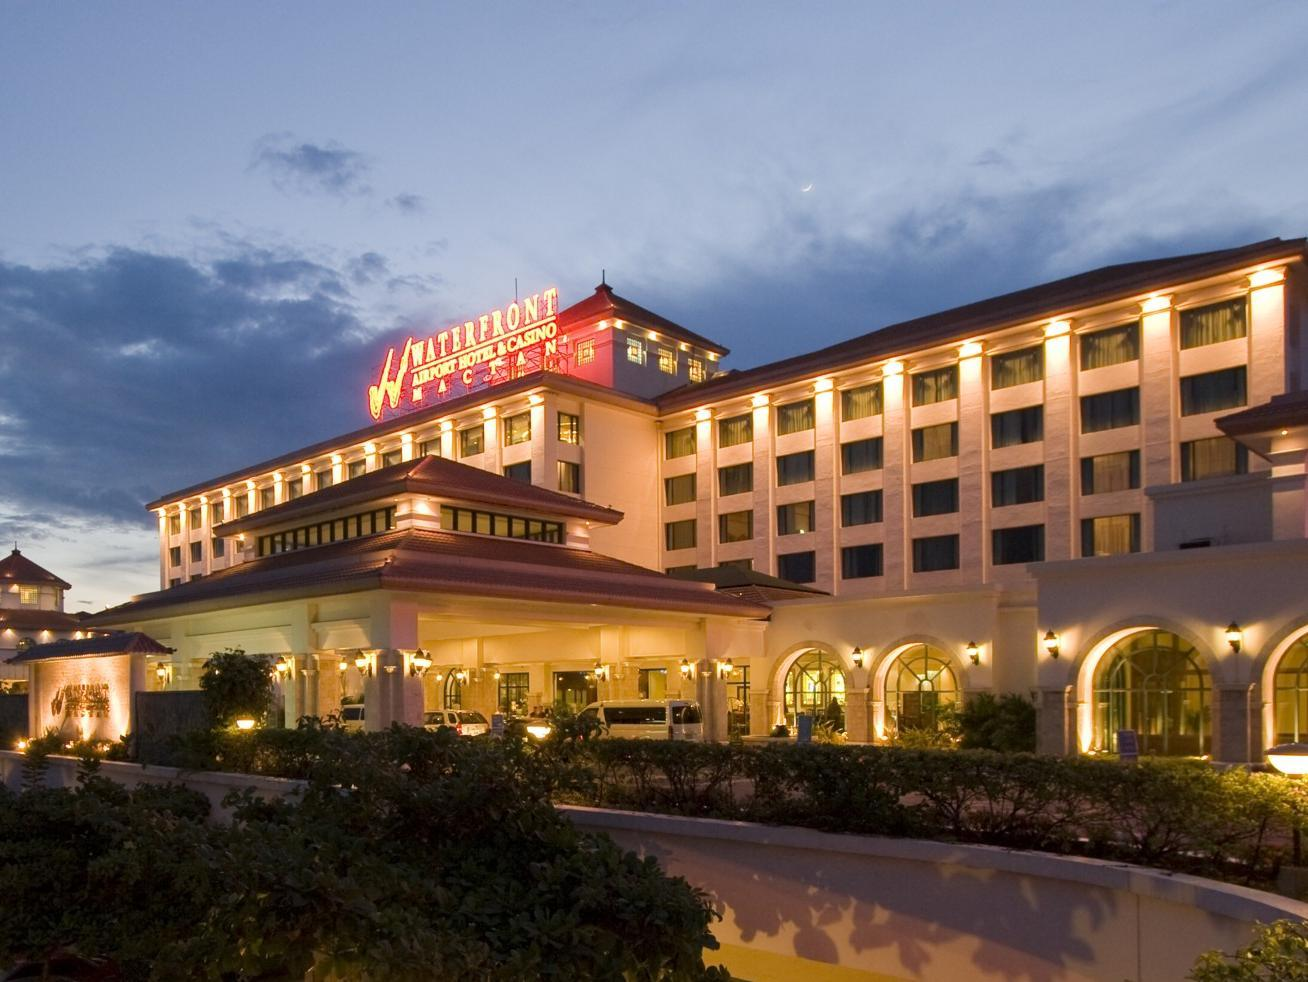 Waterfront Airport Hotel and Casino Cebu City - Exterior do Hotel